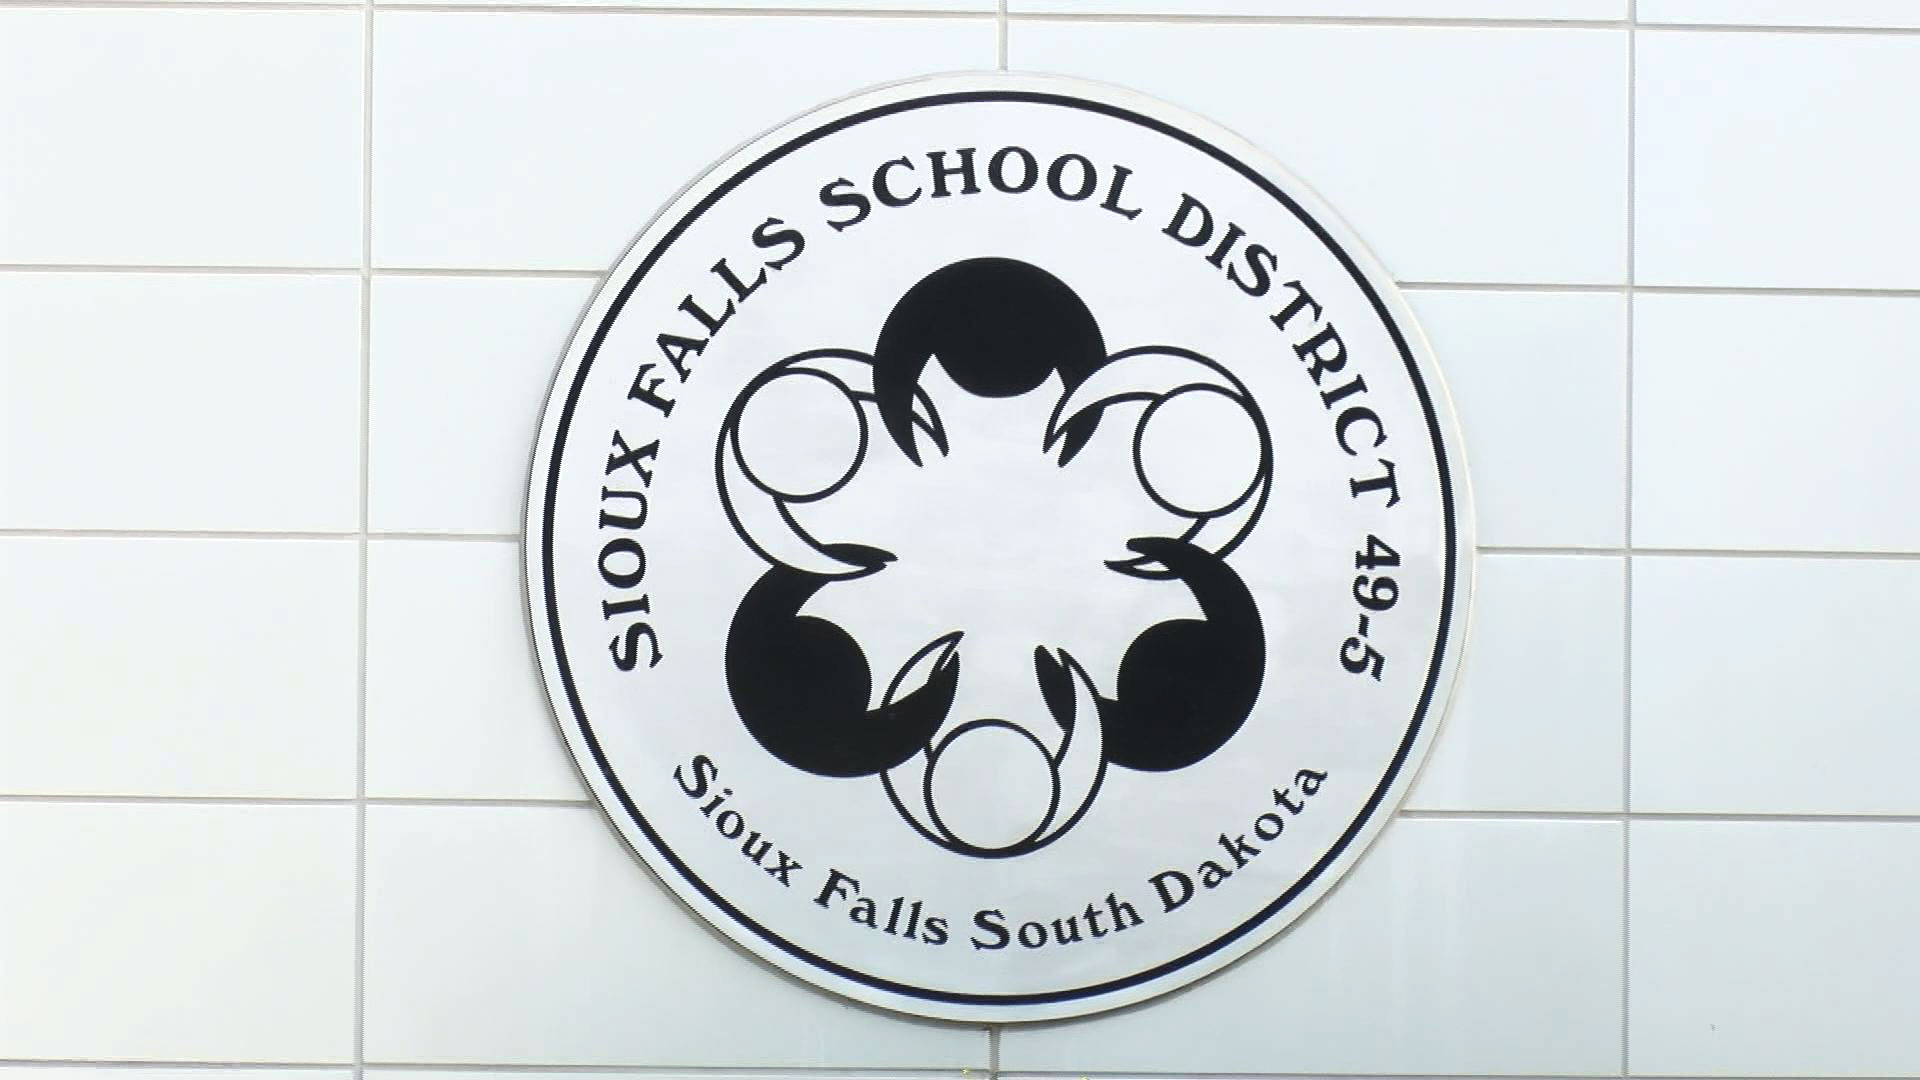 KELO Sioux Falls School District2